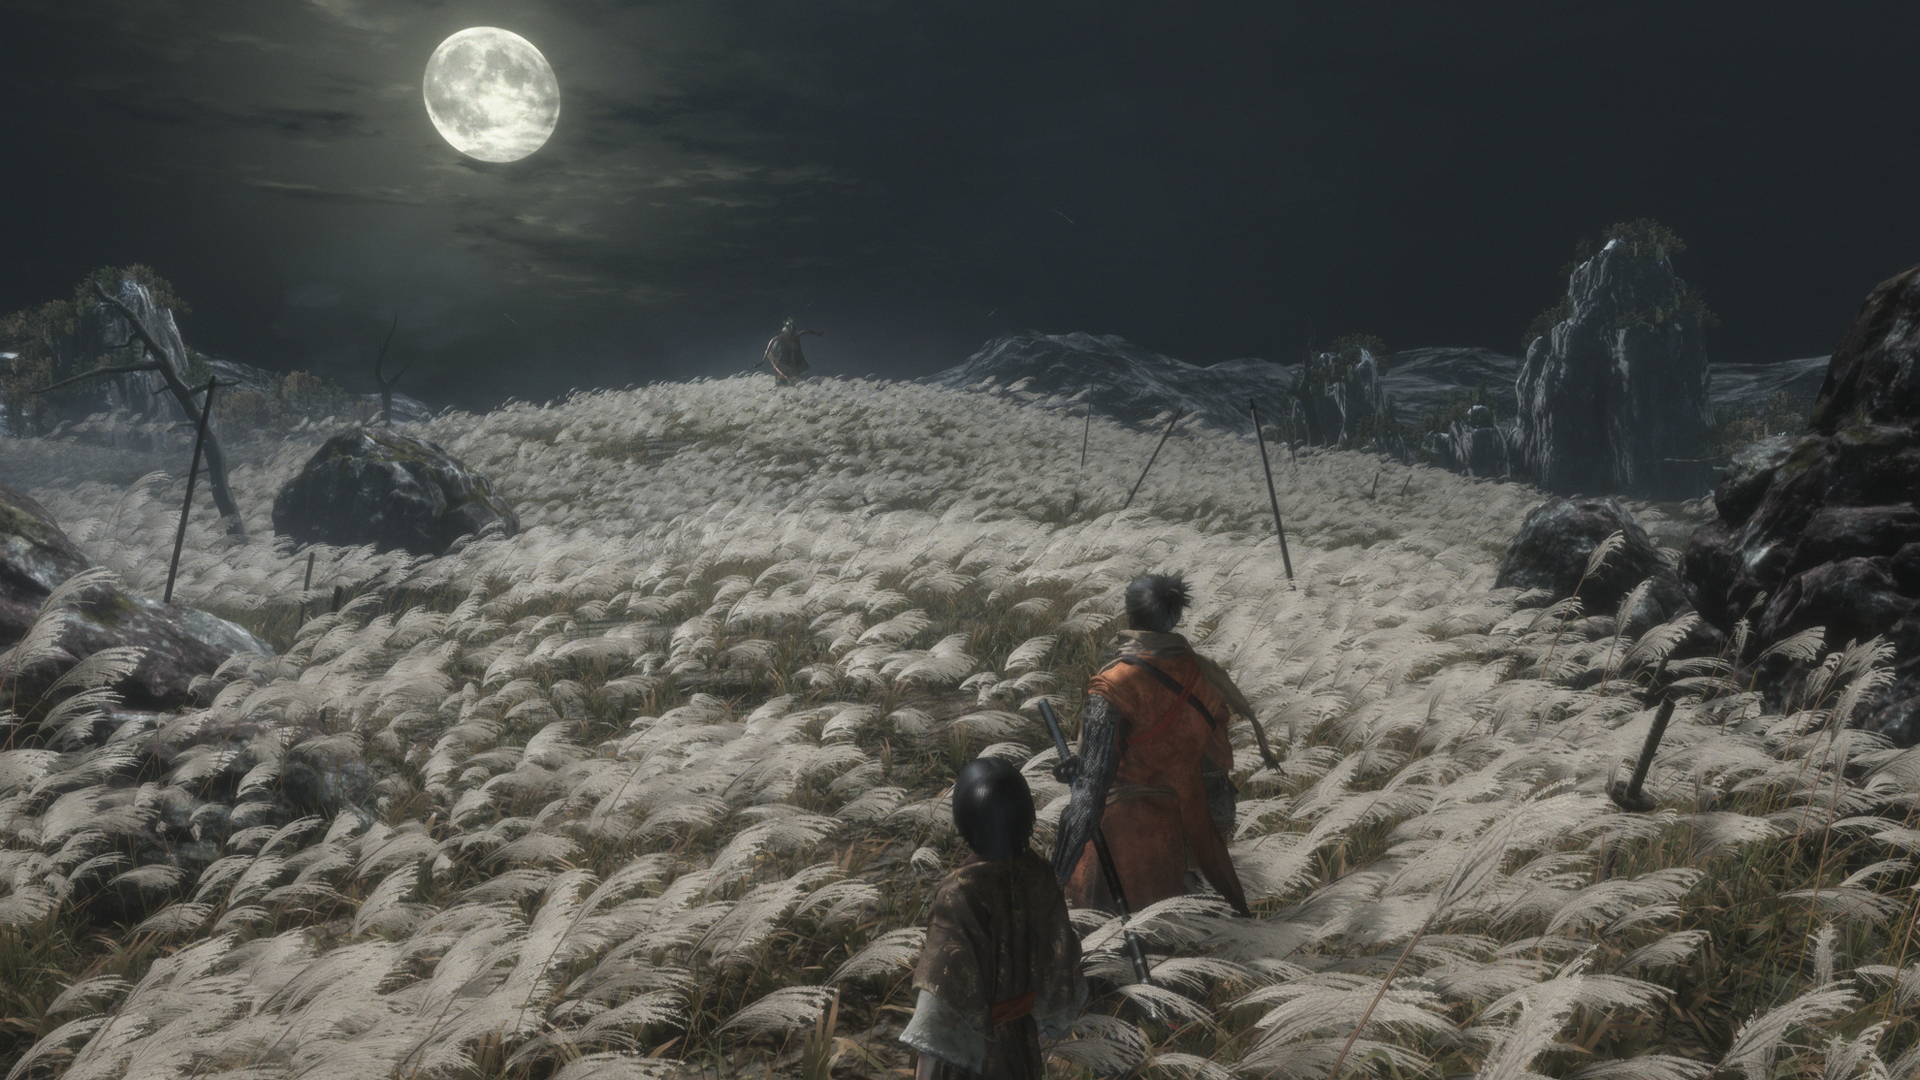 sekiro - photo #25